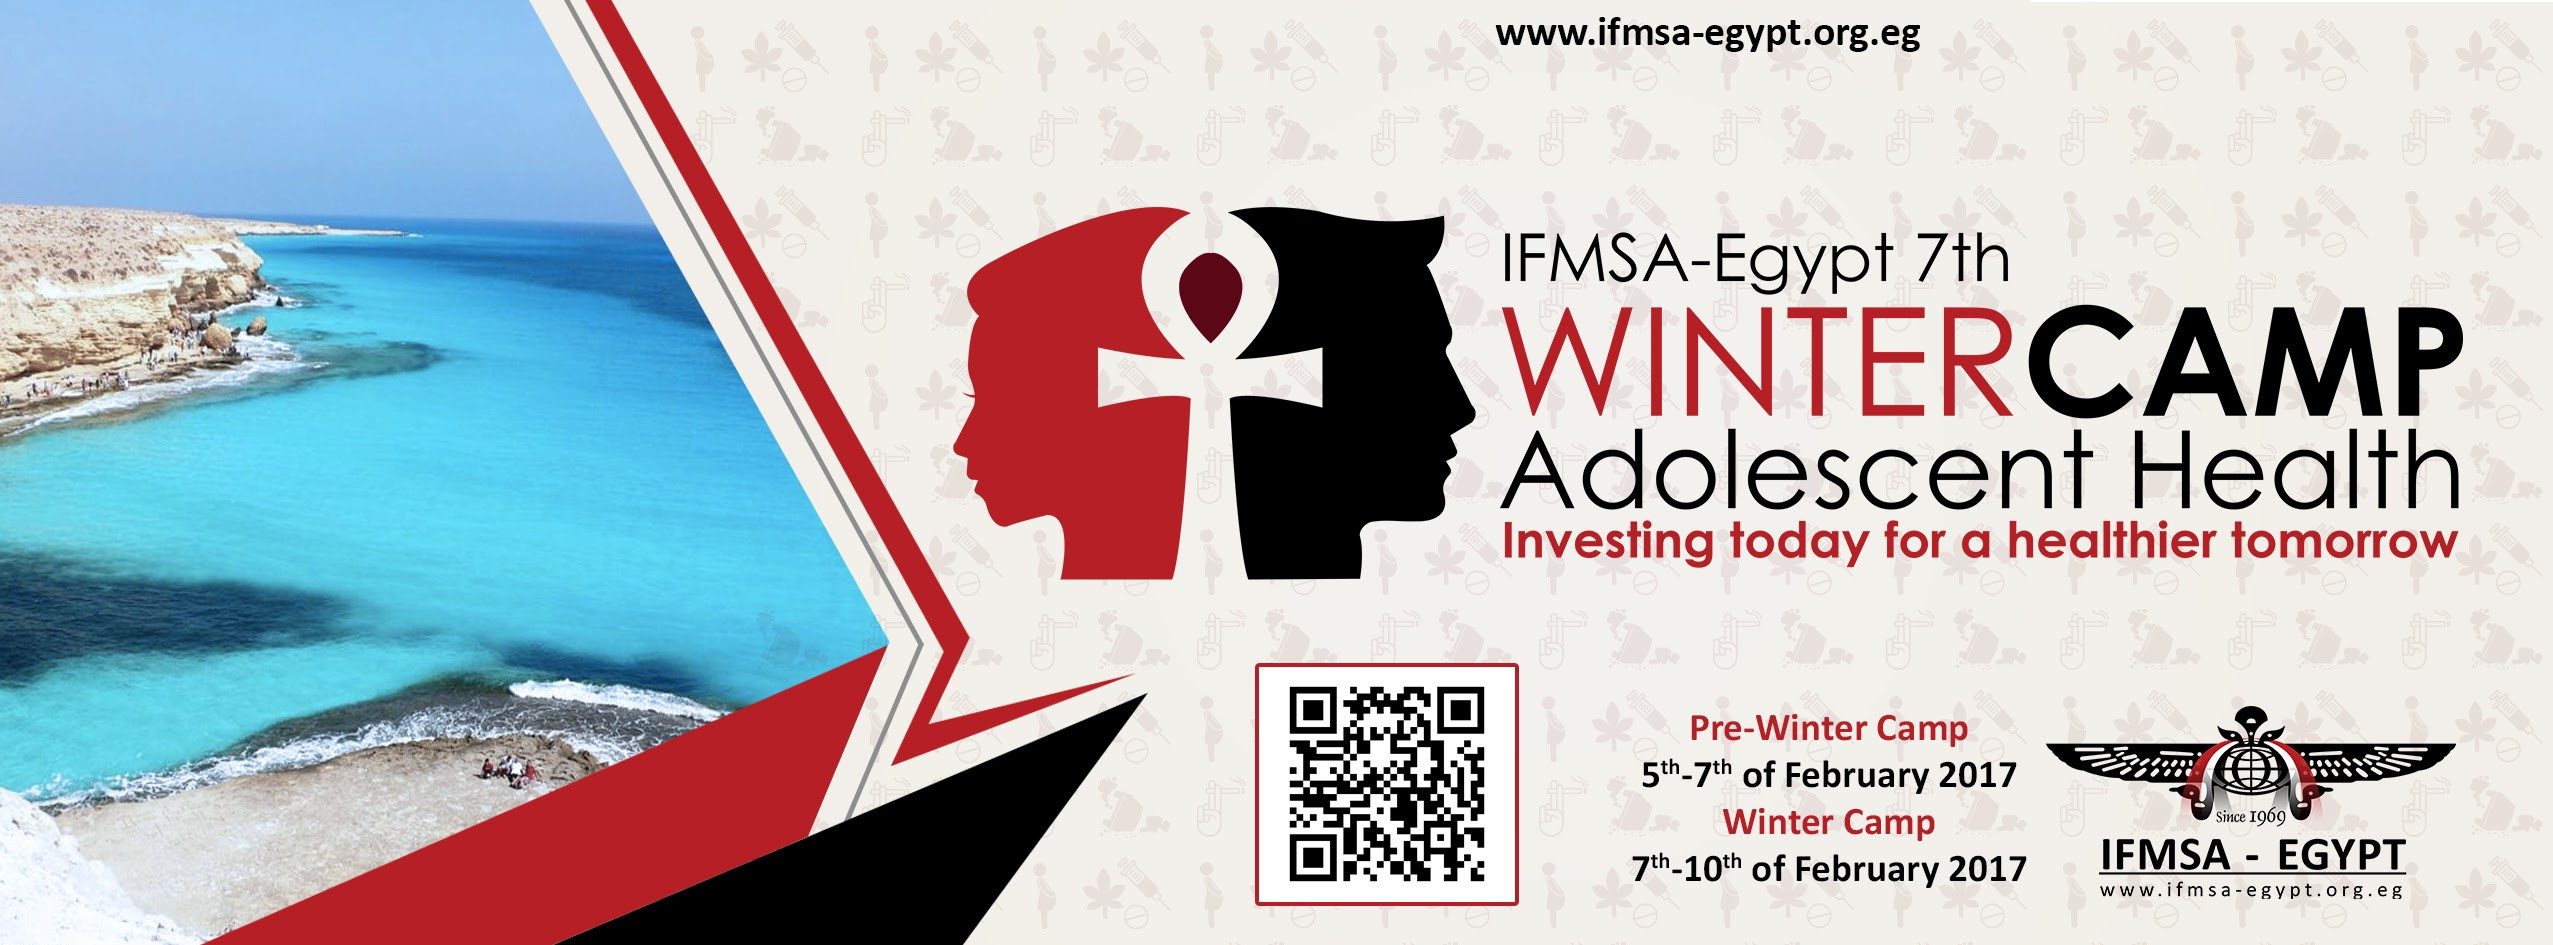 Zimski kamp IFMSA-Egipt: Adolescent Health – Investing today for a healthier tomorrow